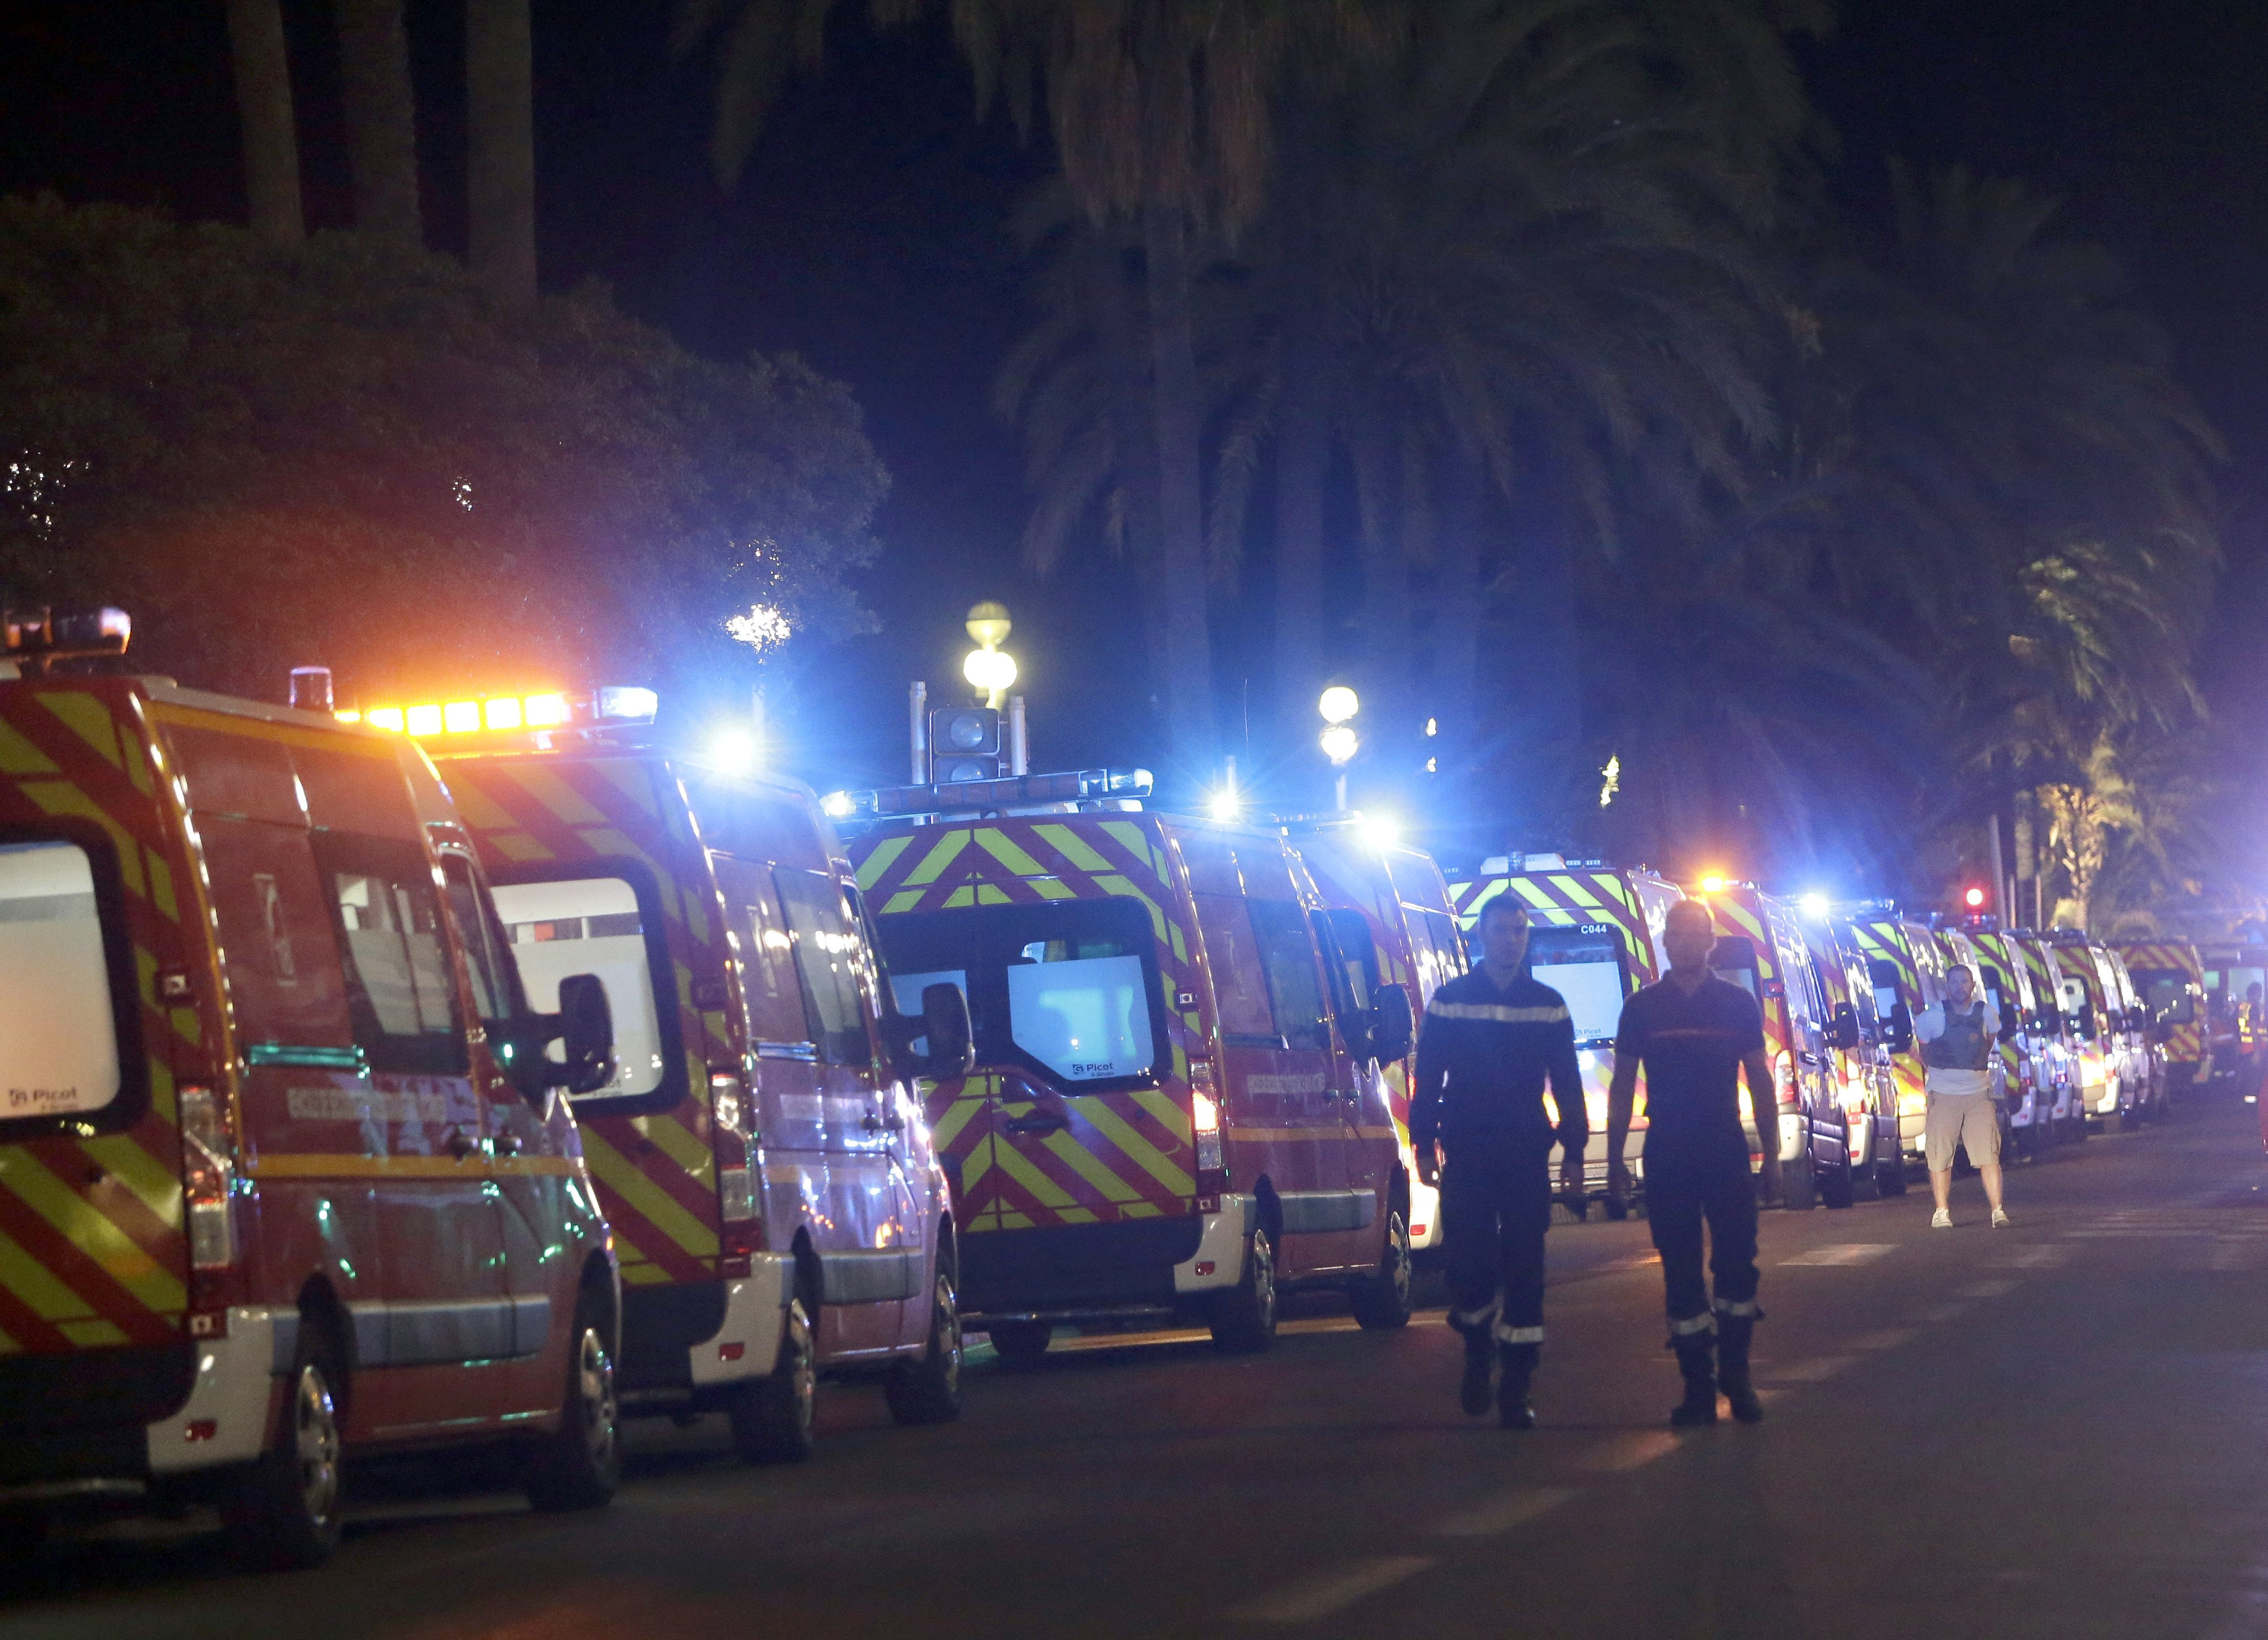 Couple Reunited With Baby Lost During Nice Attack After Facebook Appeal Nice2 1 1